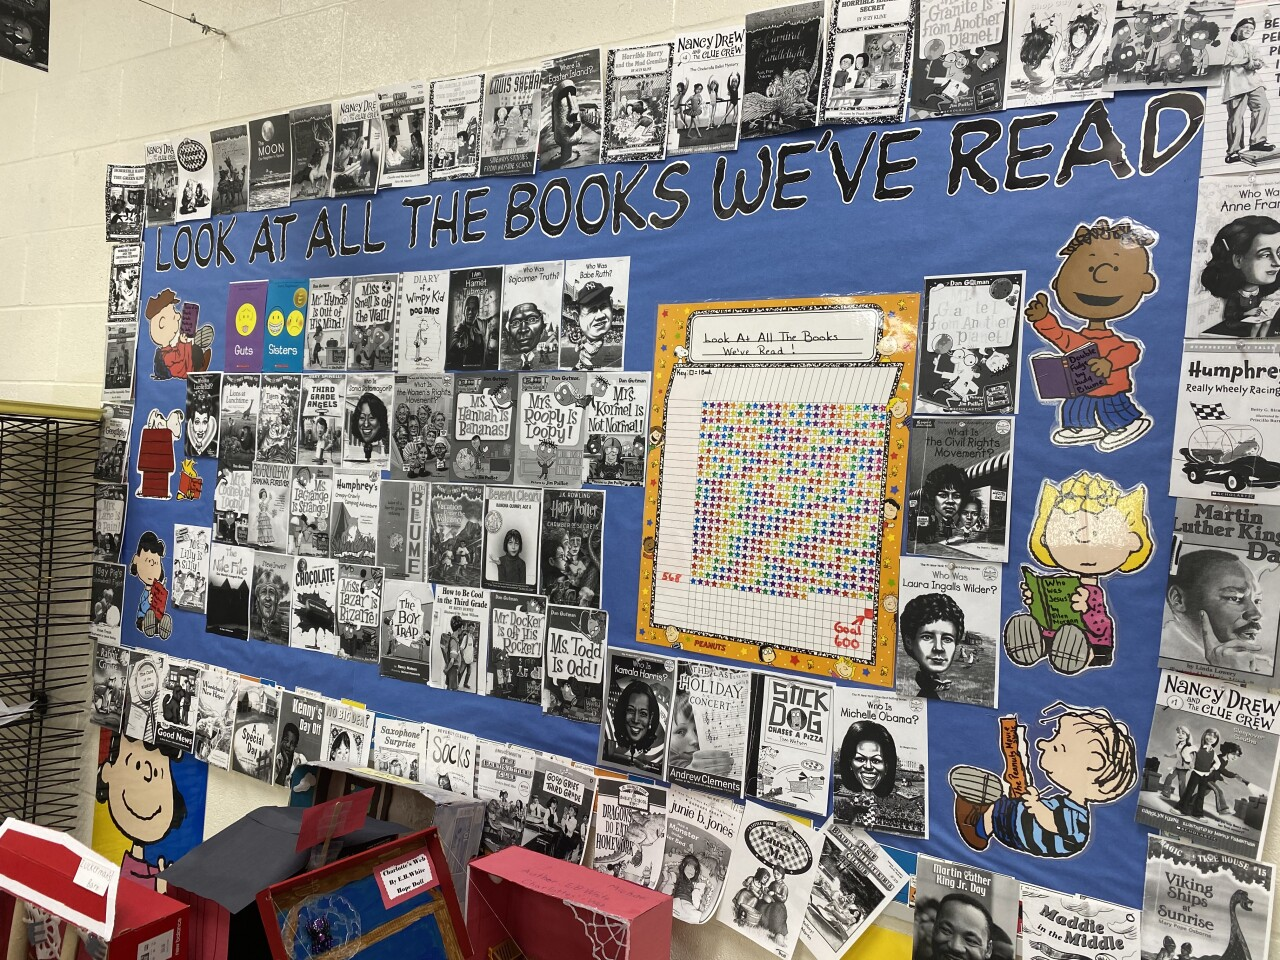 The reading challenge started as a bulletin board and kept growing